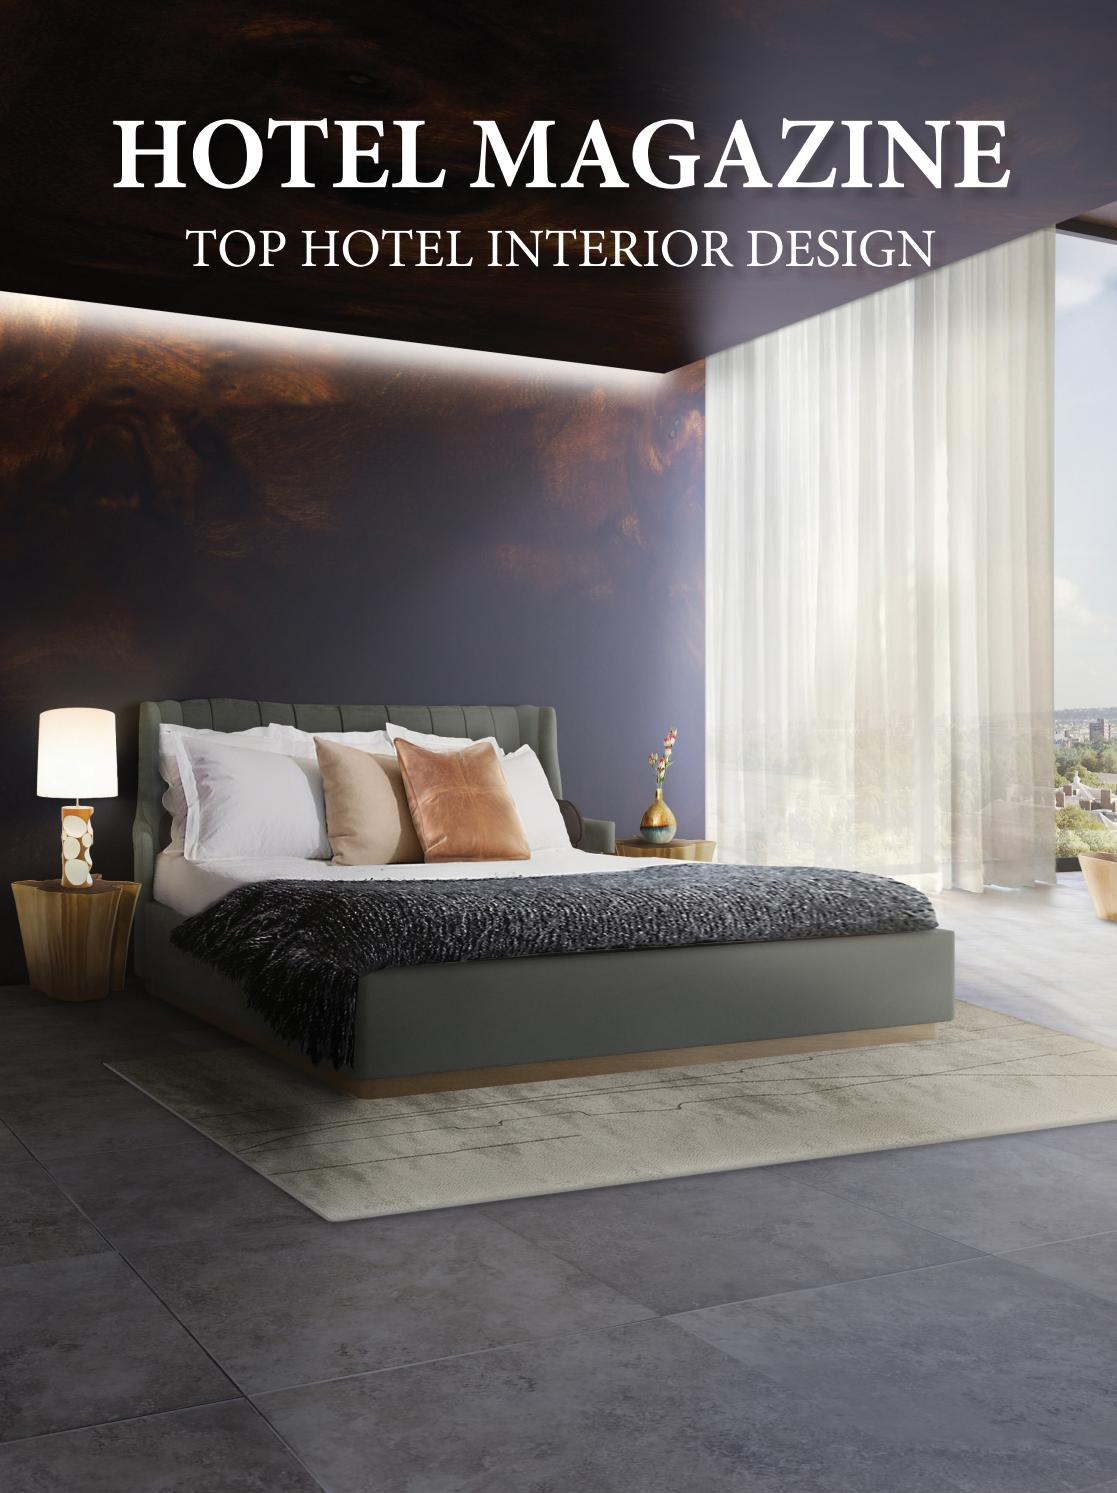 Hotel Magazine  Top Hotels Interior Design by HOME  LIVING MAGAZINES  Issuu